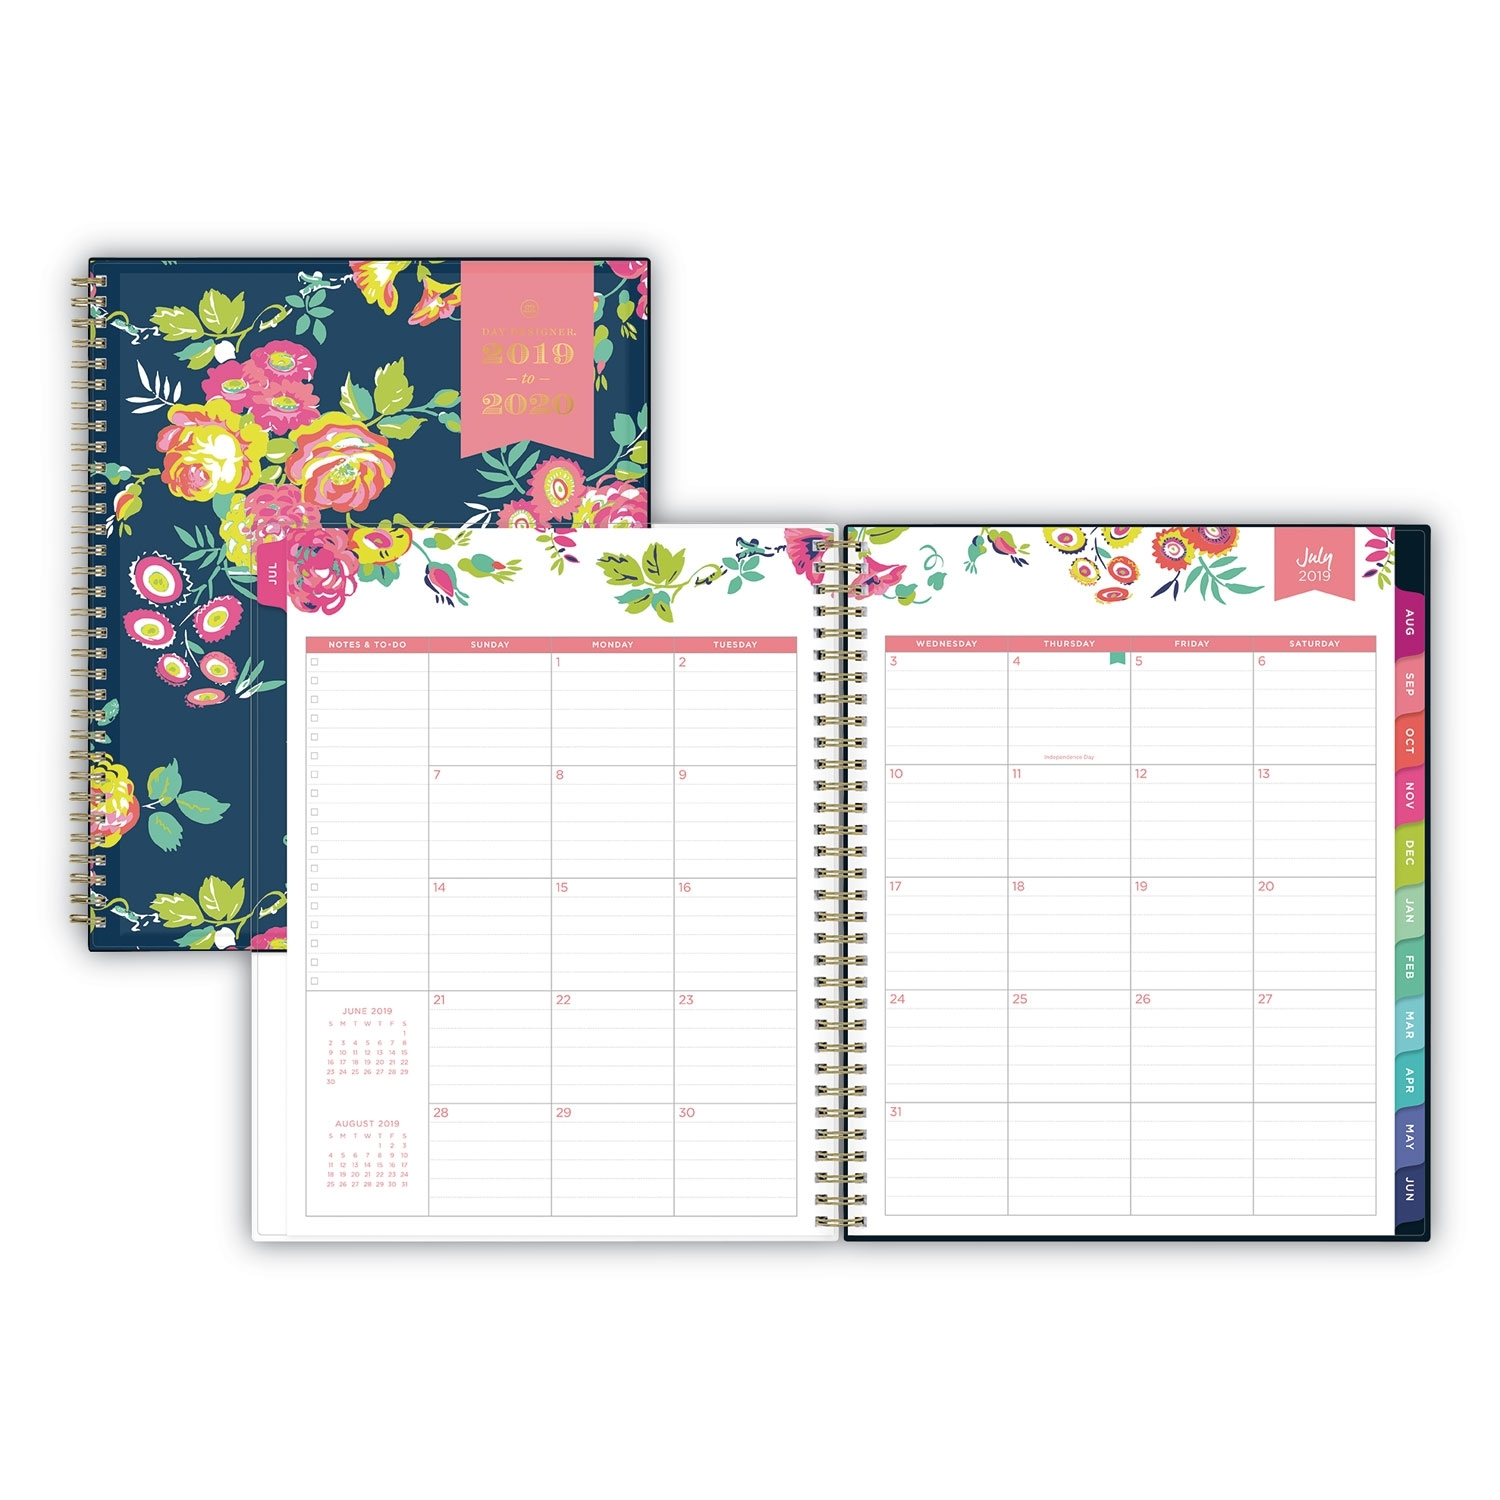 Day Designer Academic Year Cyo Weekly/Monthly Planner, 11 X 8.5,  Navy/Floral, 2020-2021